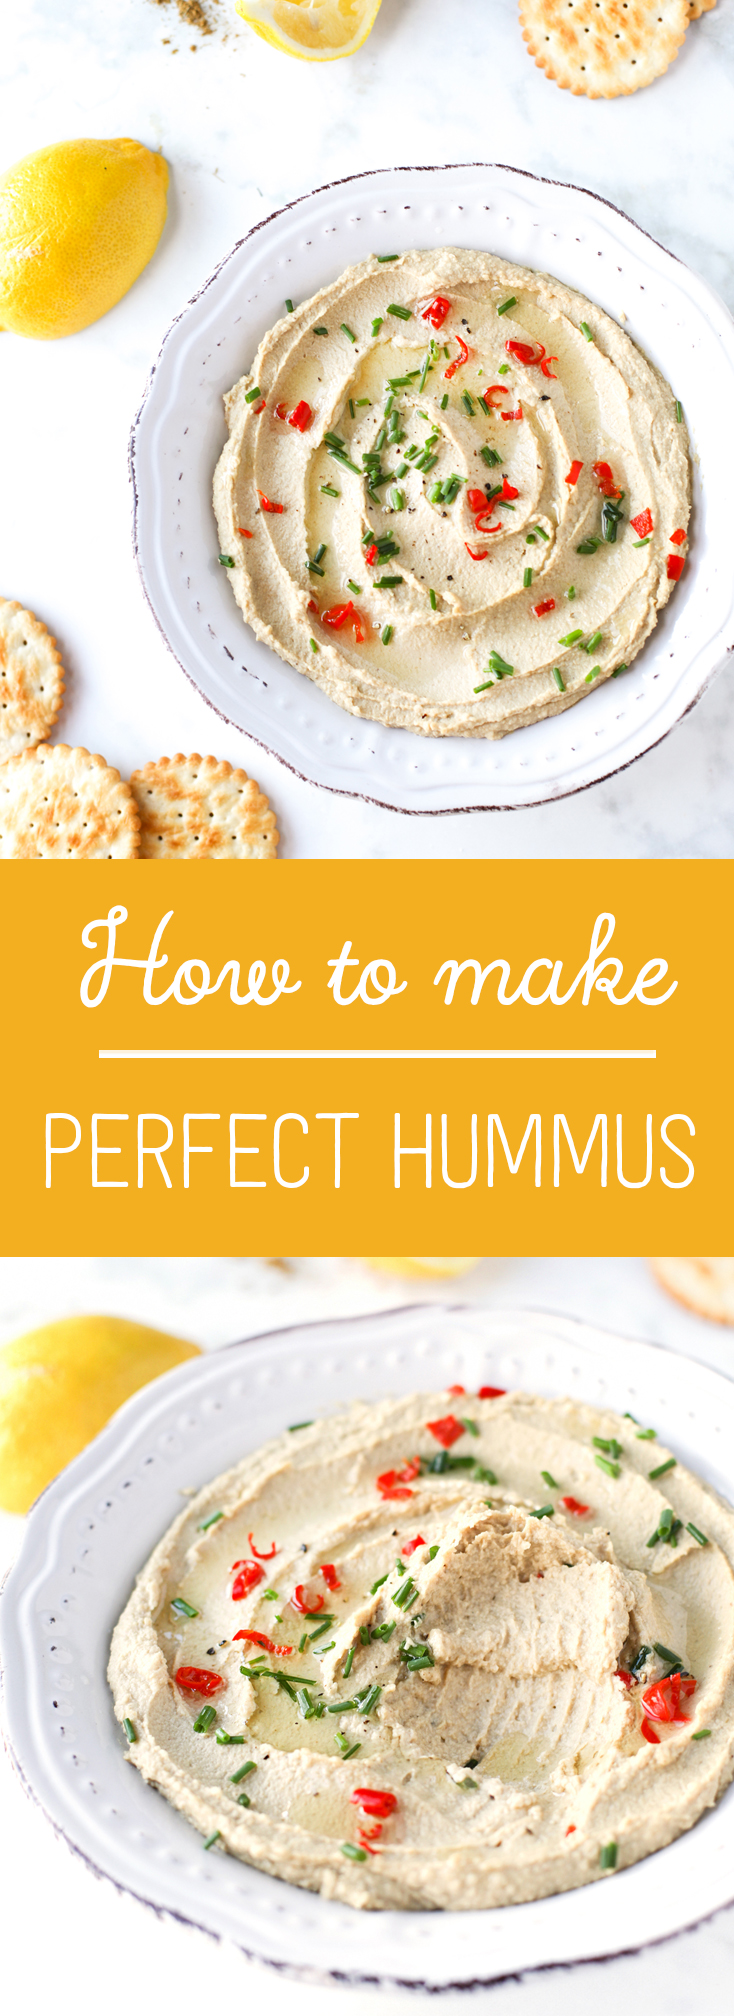 Hummus sprinkled with herbs and chilli served with crackers